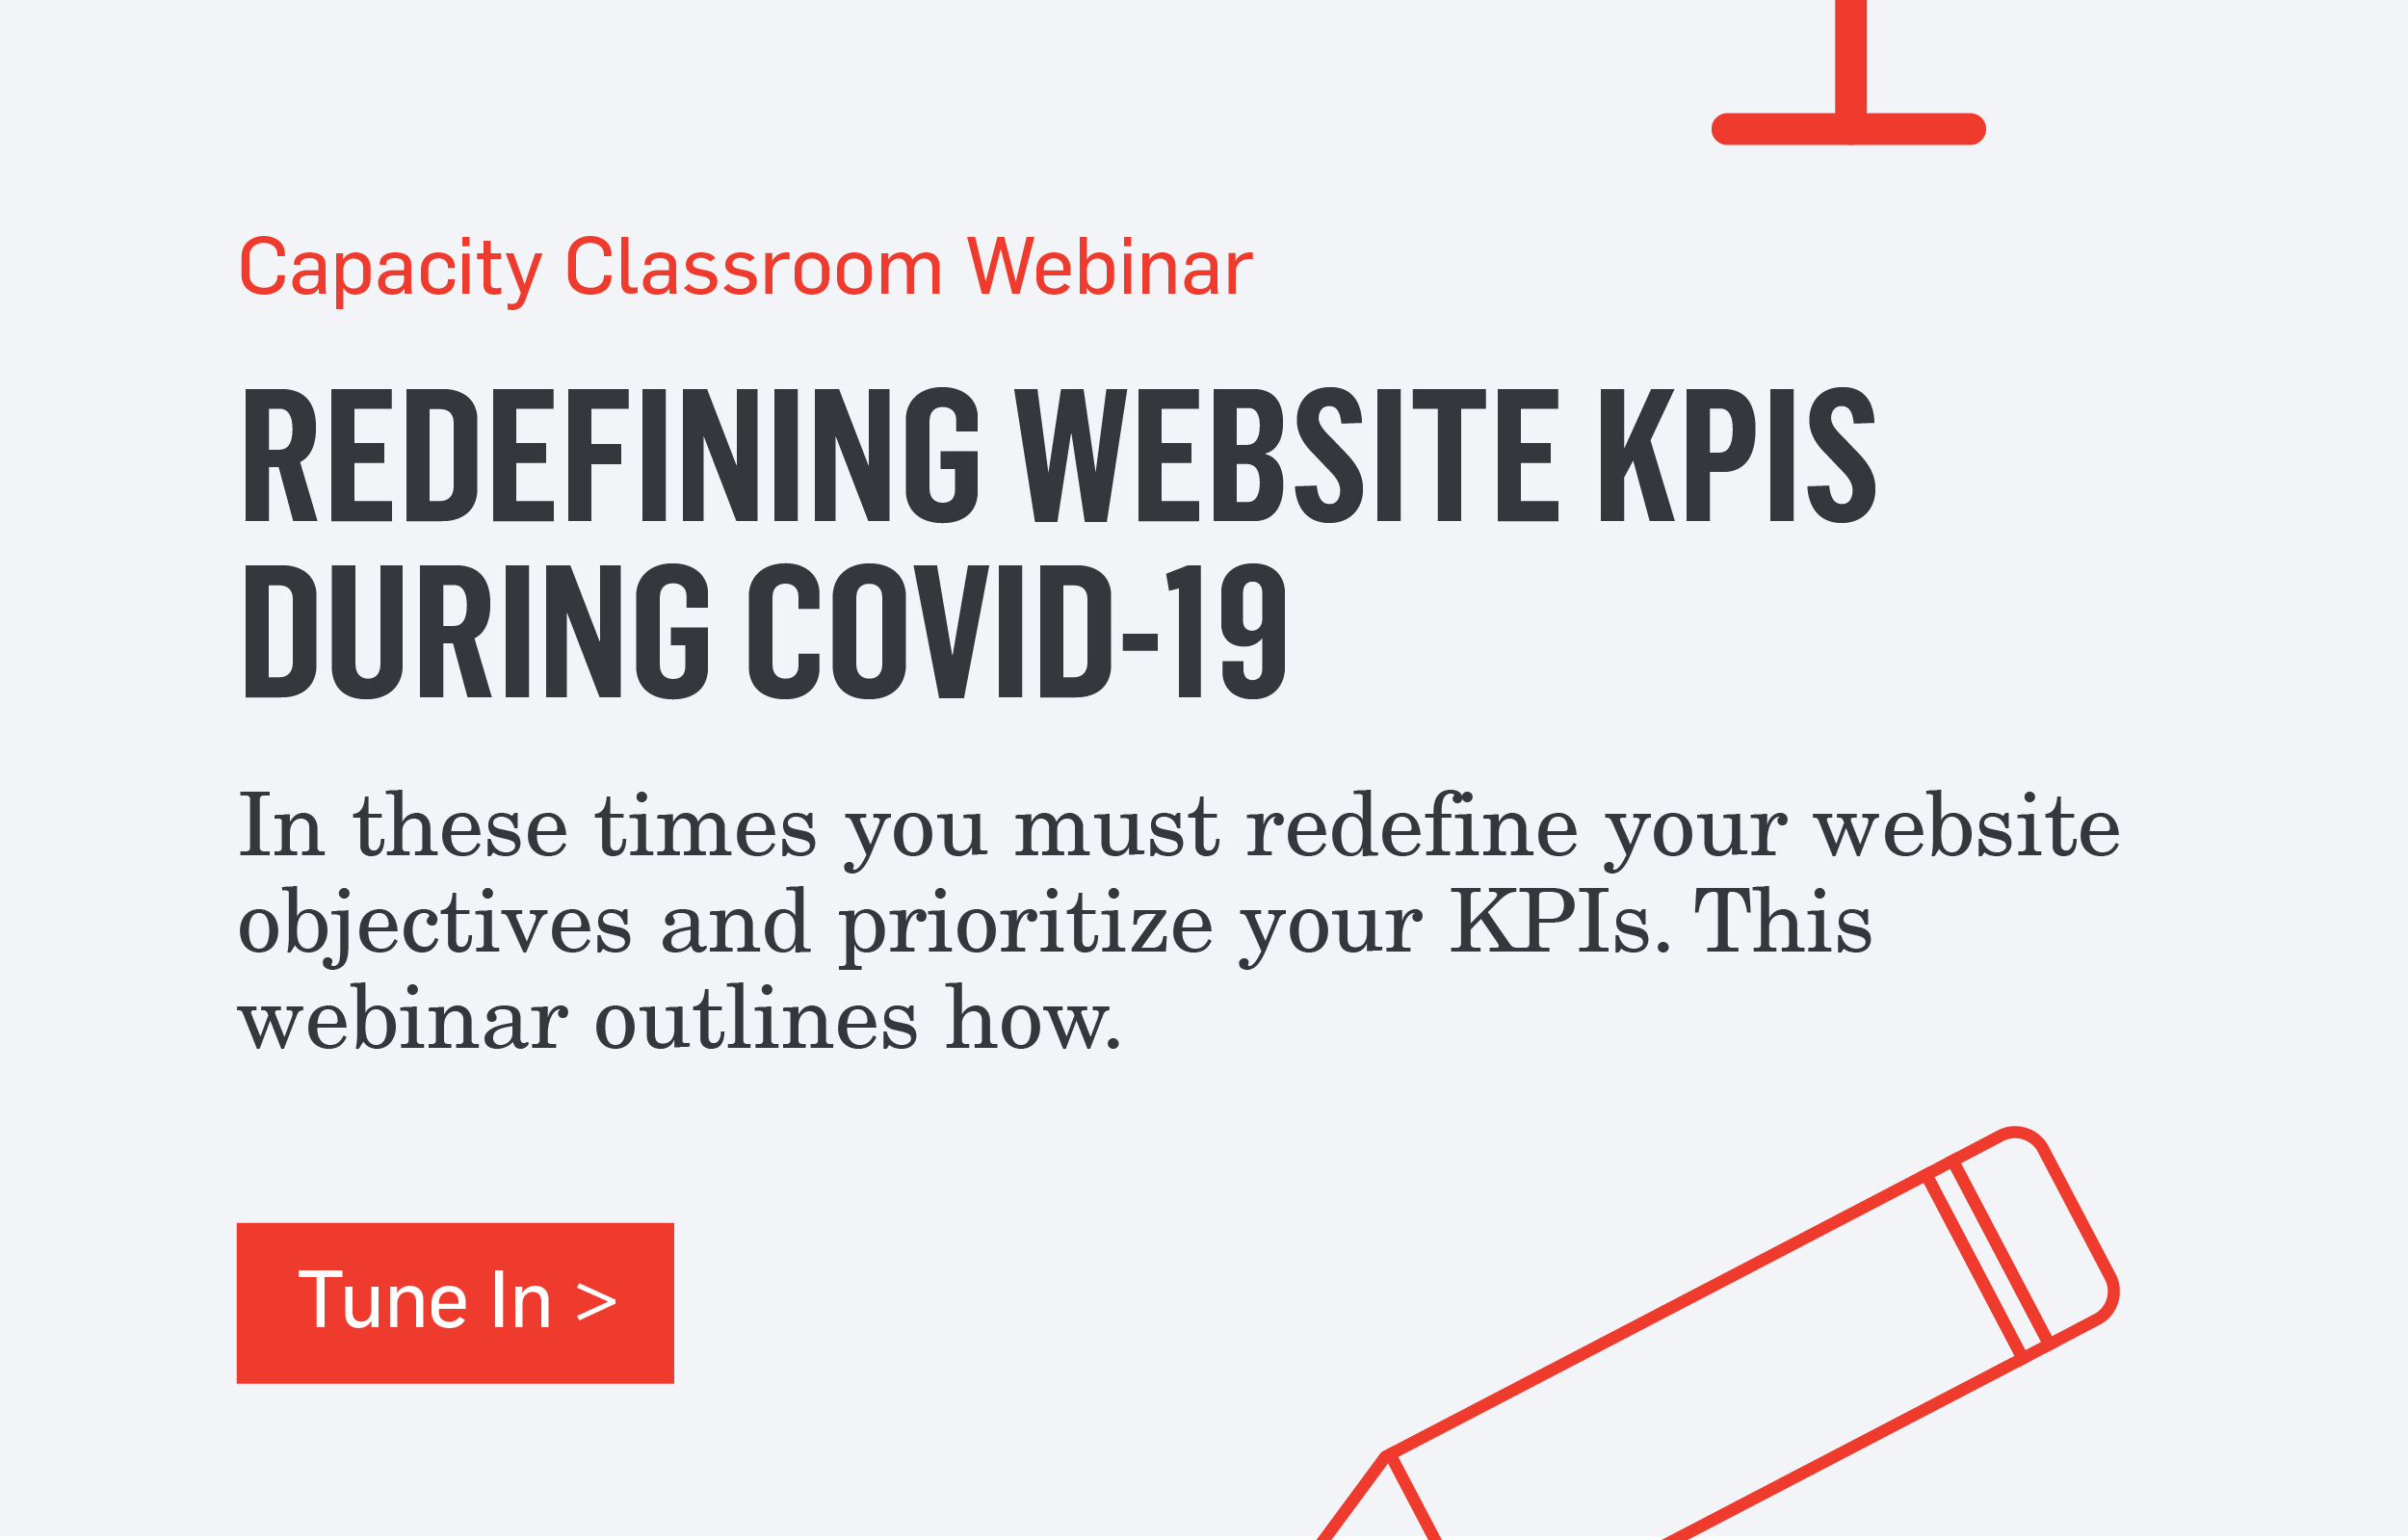 Capacity Classroom Webinar - REDEFINING WEBSITE KPIS DURING COVID-19 - In these times you must redefine your website objectives and prioritize your KPIs. This webinar outlines how. >>>Tune In>>>